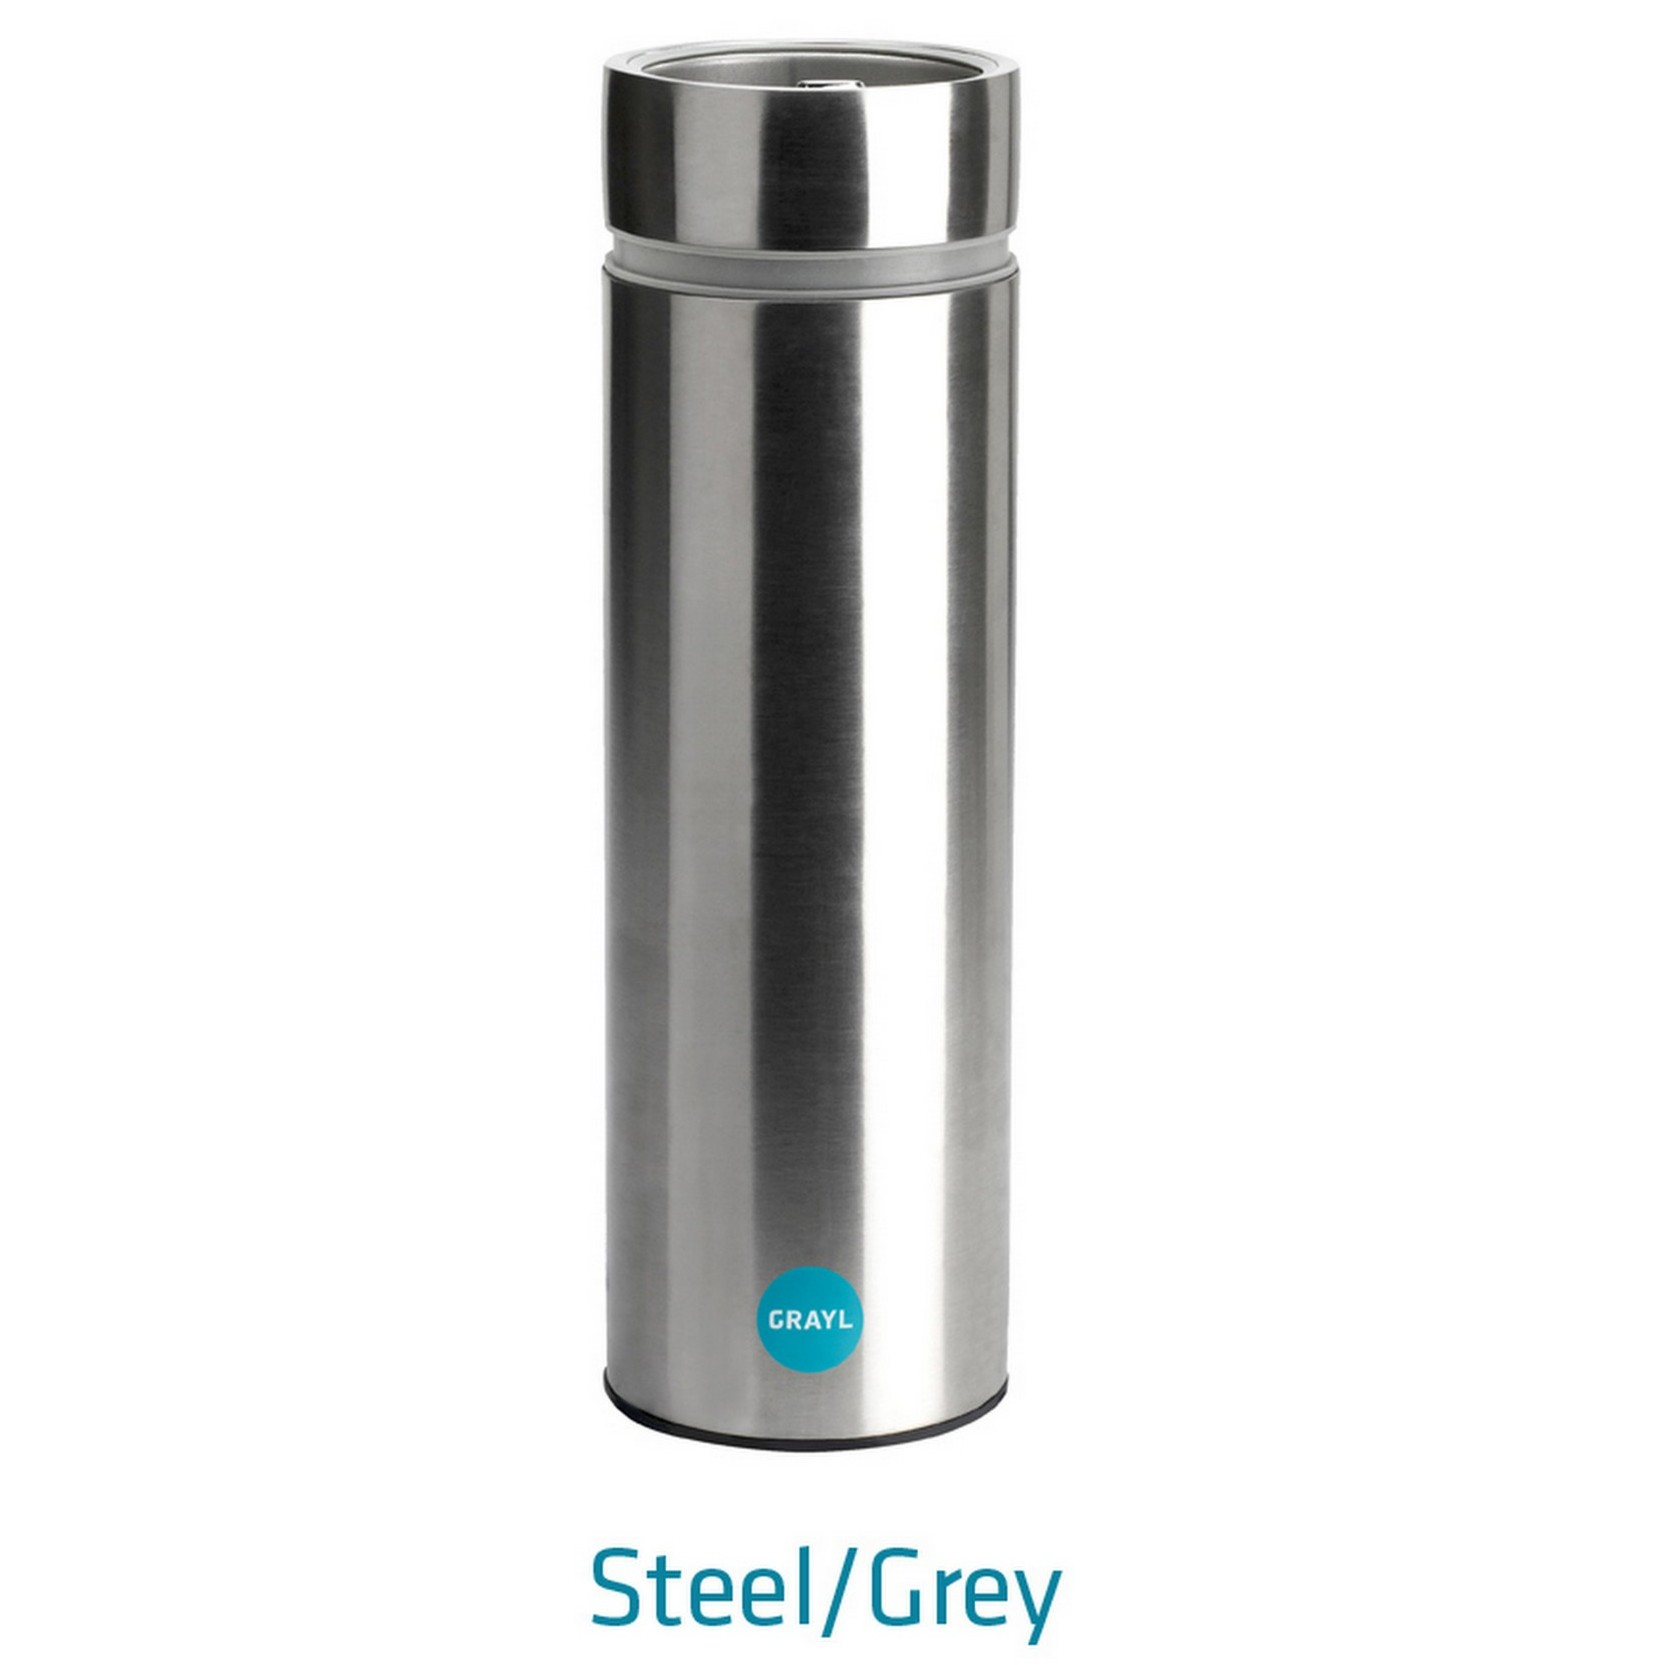 Grayl The Water Filtration Cup Stainless Steel - Steel / Grey SAVE £38